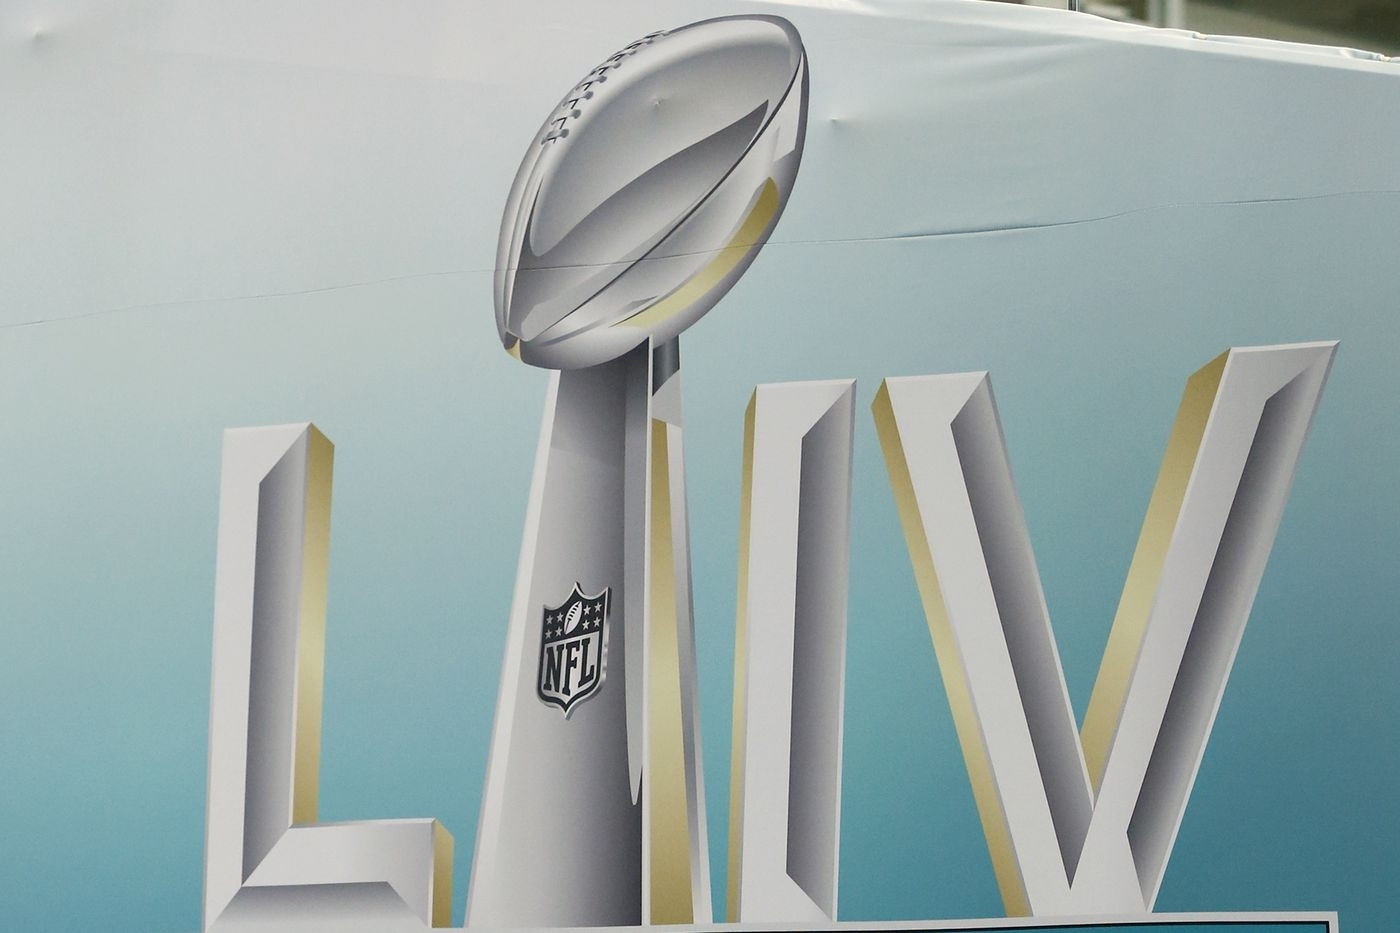 Super Bowl 54 In Miami - The Phinsider within Miami Dolphins Host Super Bowl